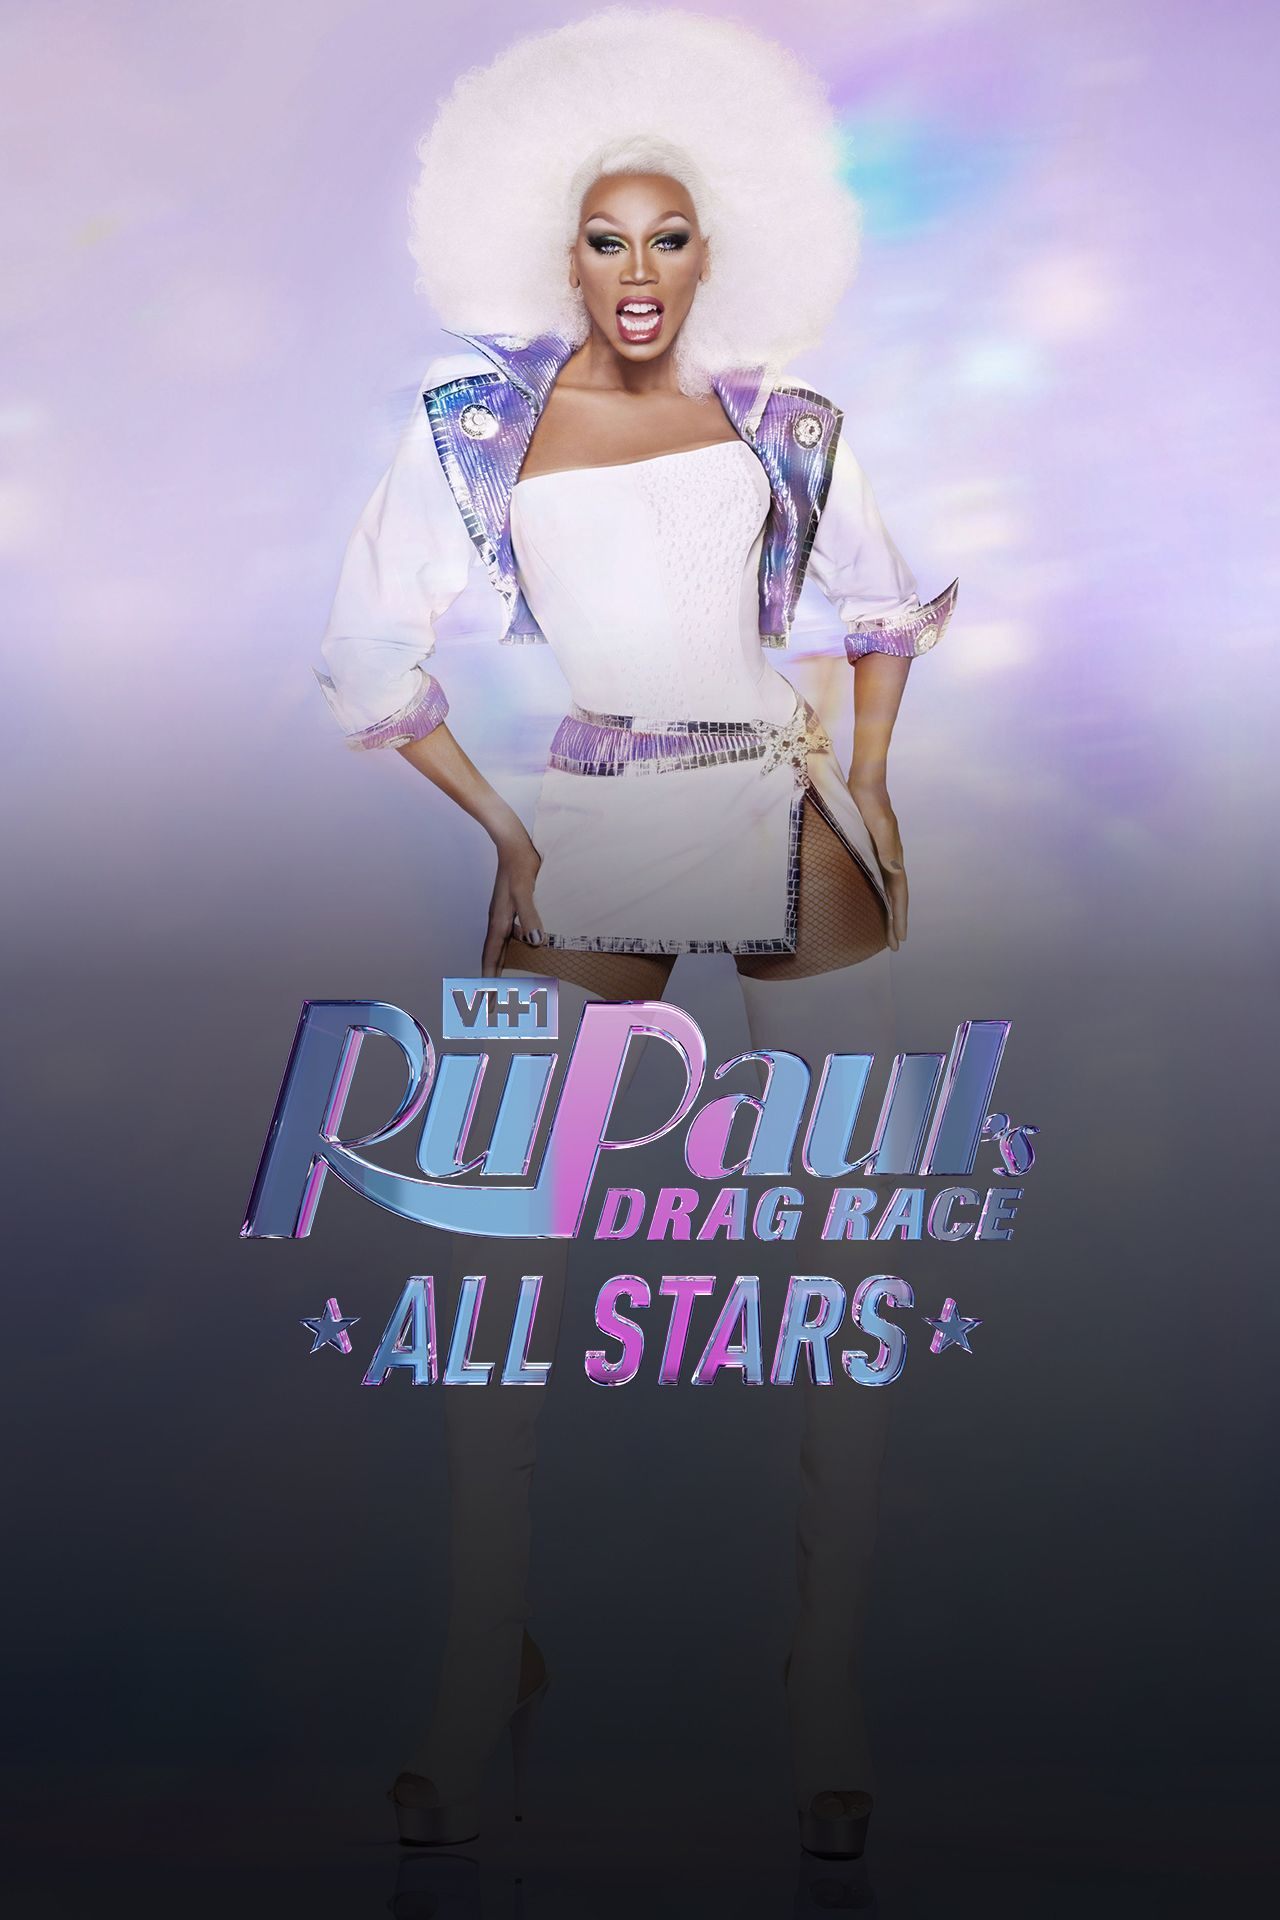 RuPaul's Drag Race All Stars - Watch Full Episodes | VH1